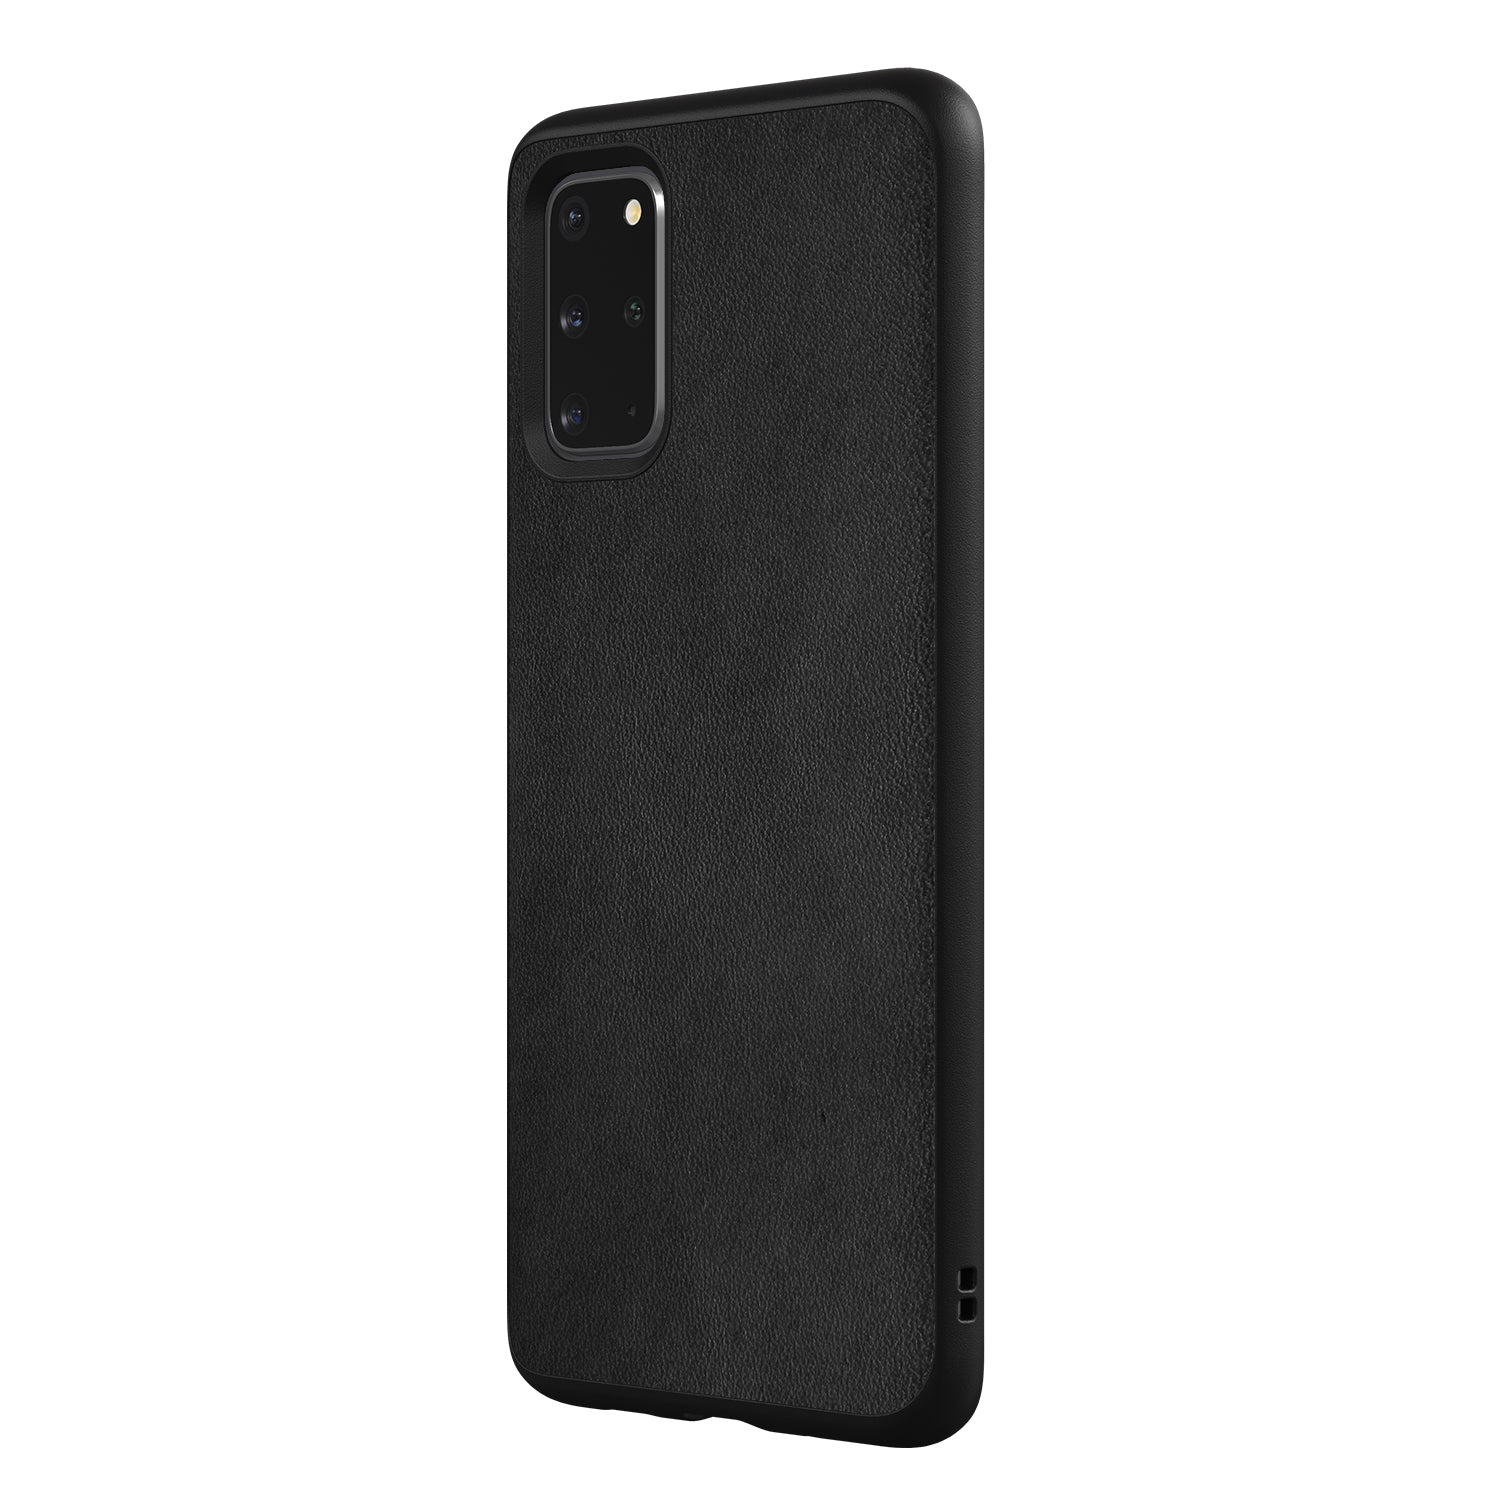 RhinoShield SolidSuit Case For Samsung Galaxy S20 Ultra - Leather